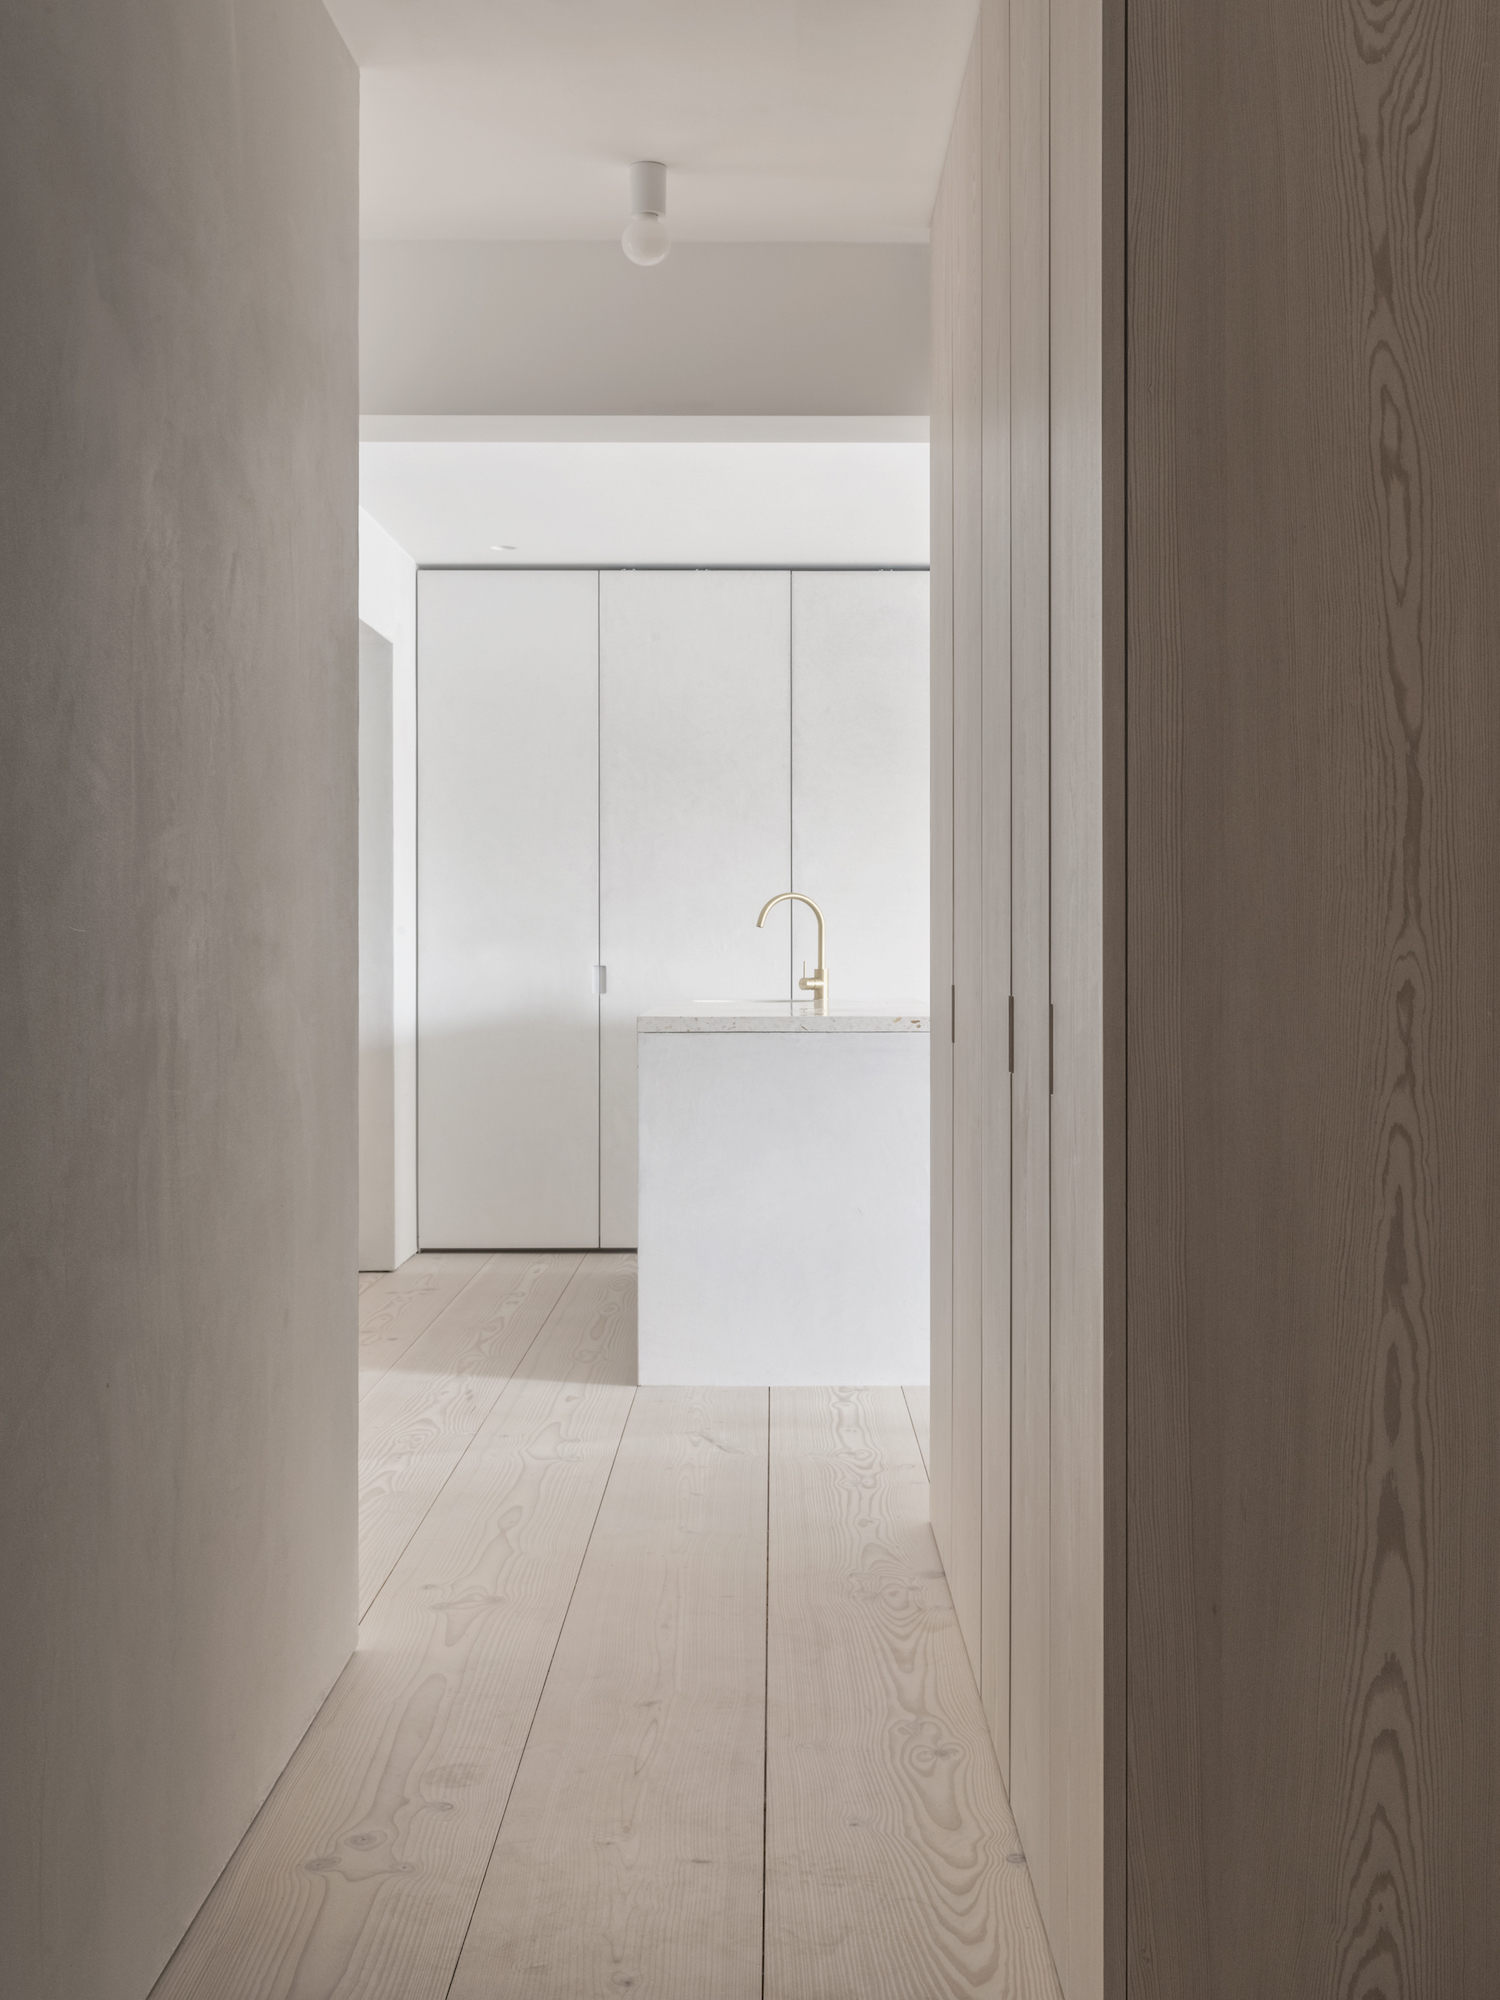 est living lokeren apartment baeten hylebos architects 01